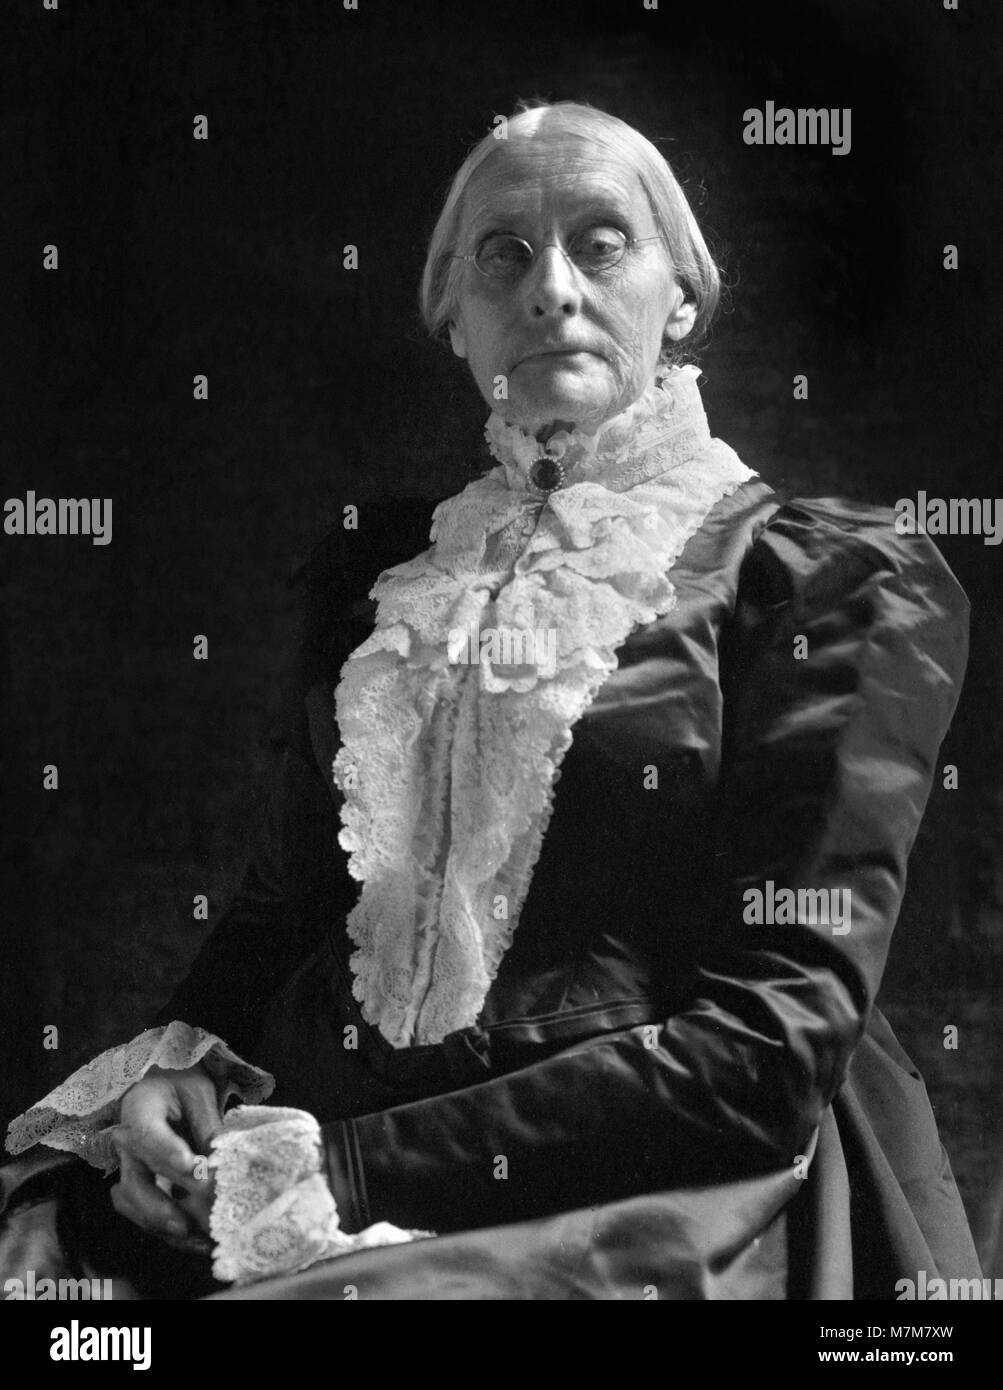 Susan B Anthony. Portrait of Susan Brownell Anthony (1820-1906), American suffragists and social reformer, by Frances - Stock Image